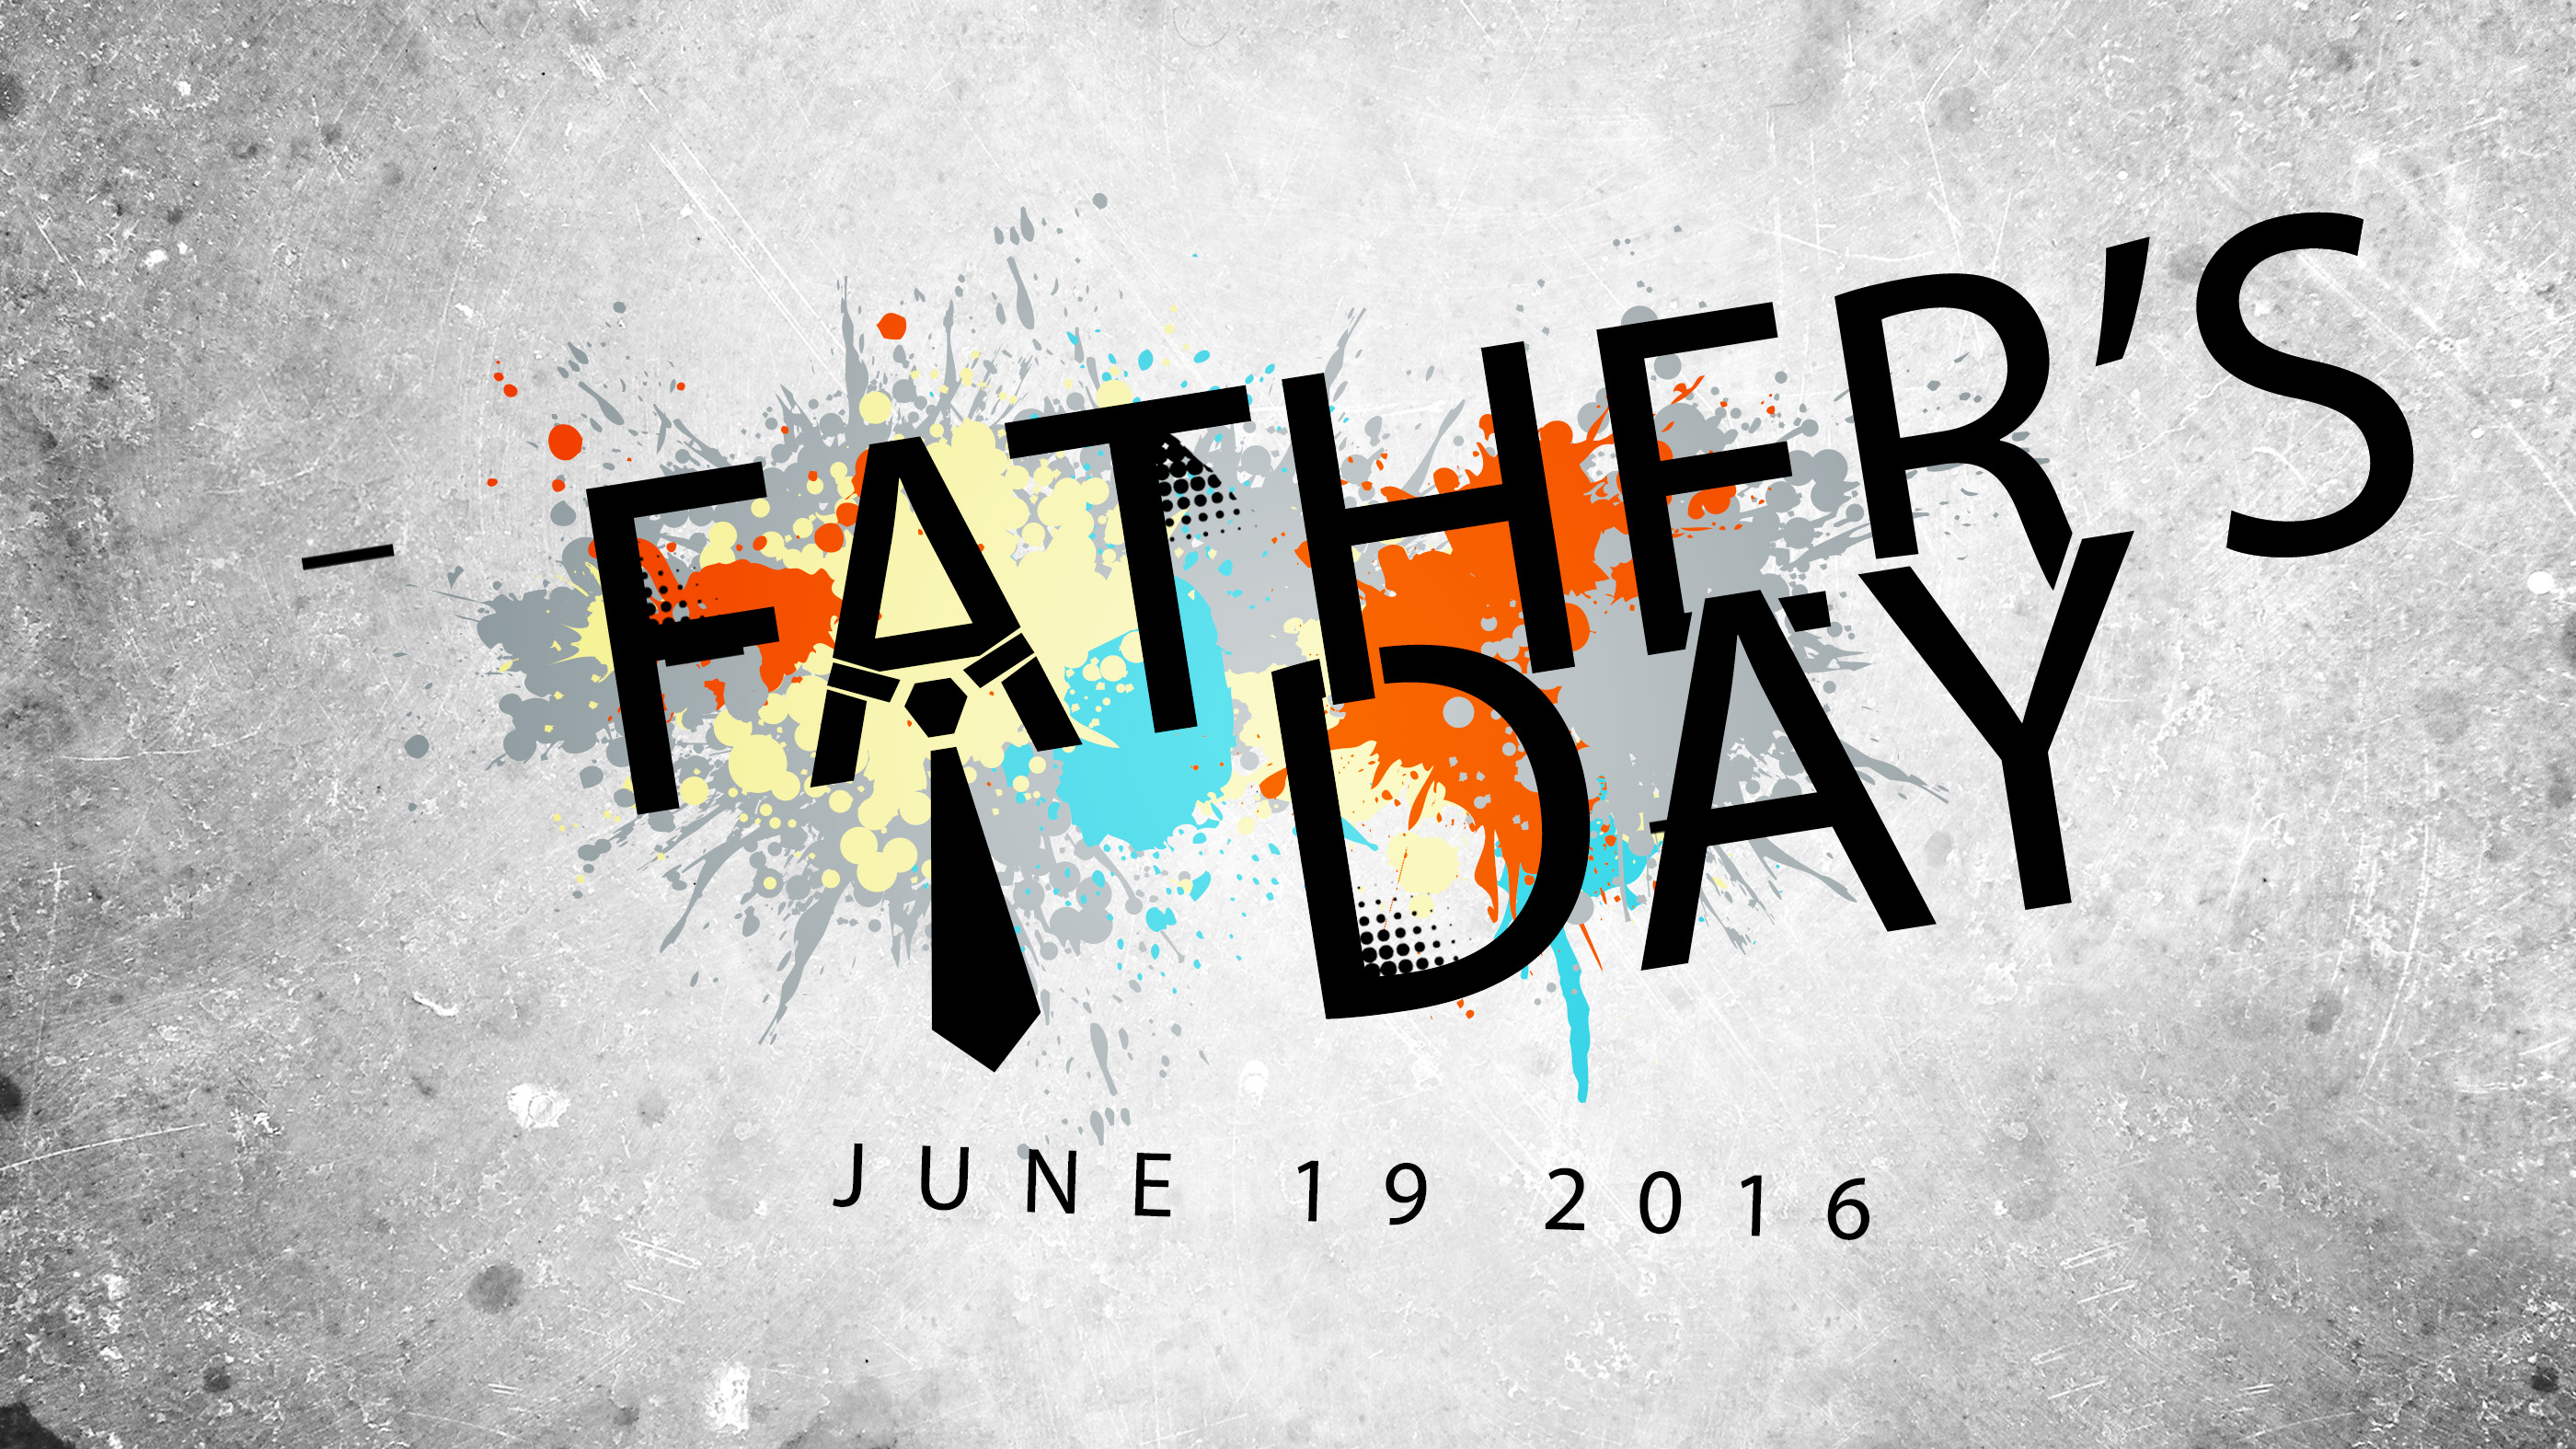 DATE-of-FATHERS-DAY-2016_1_.jpg